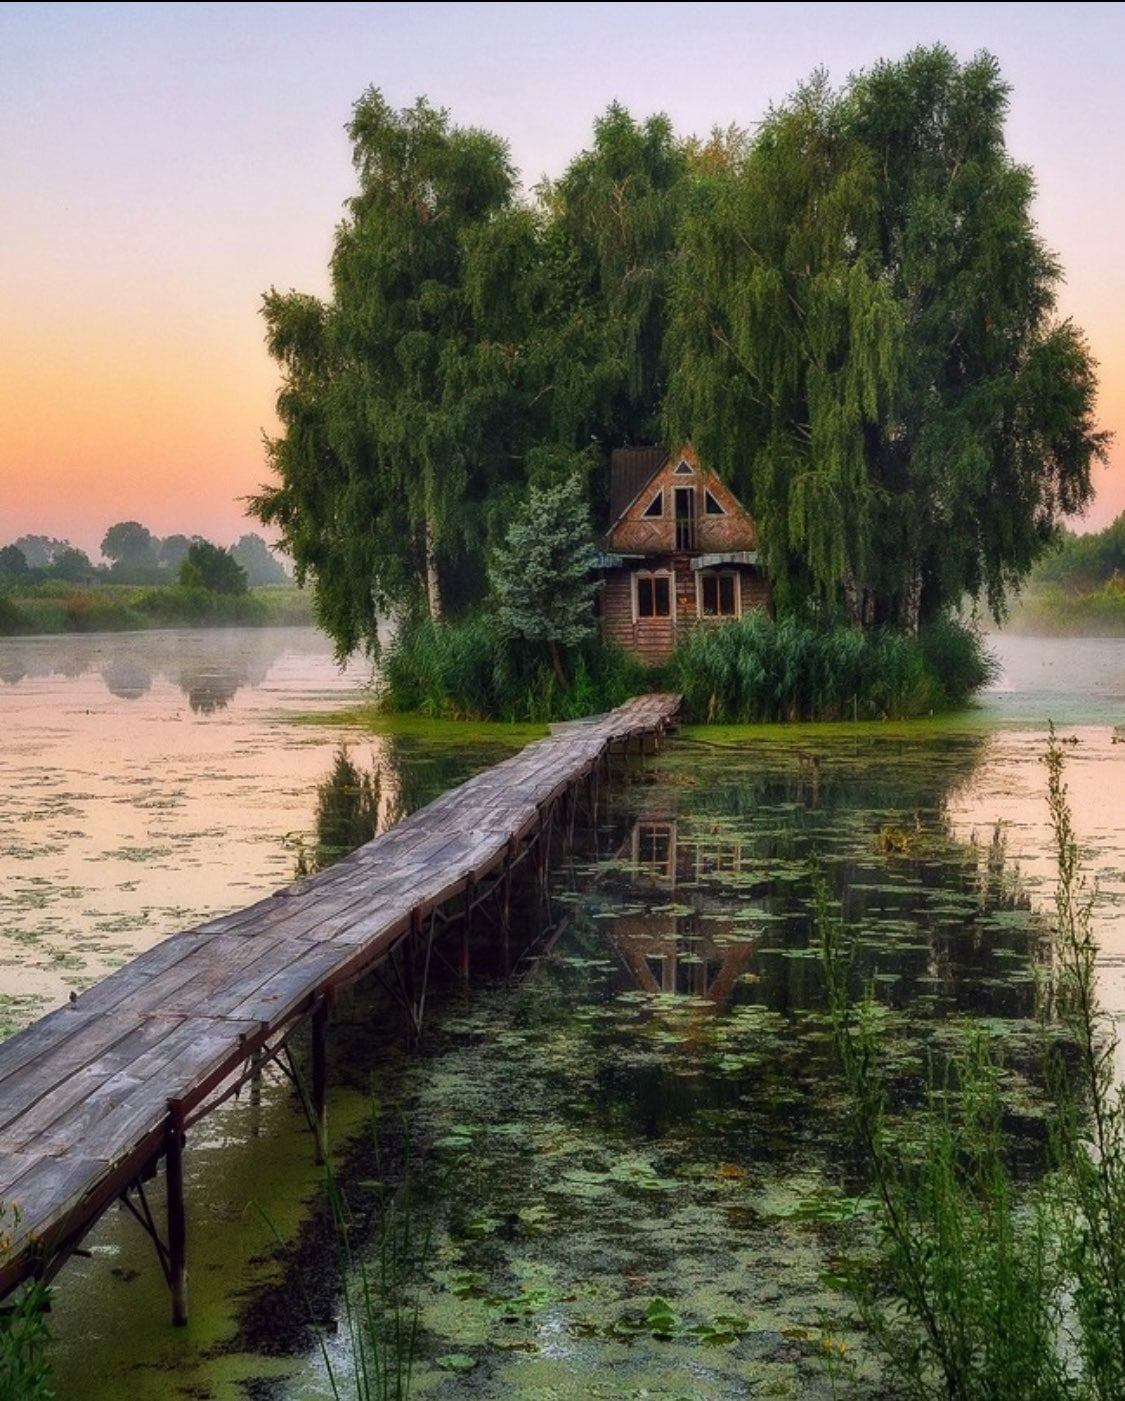 Fairy-tale house in the middle of the lake near Kyiv, Ukraine